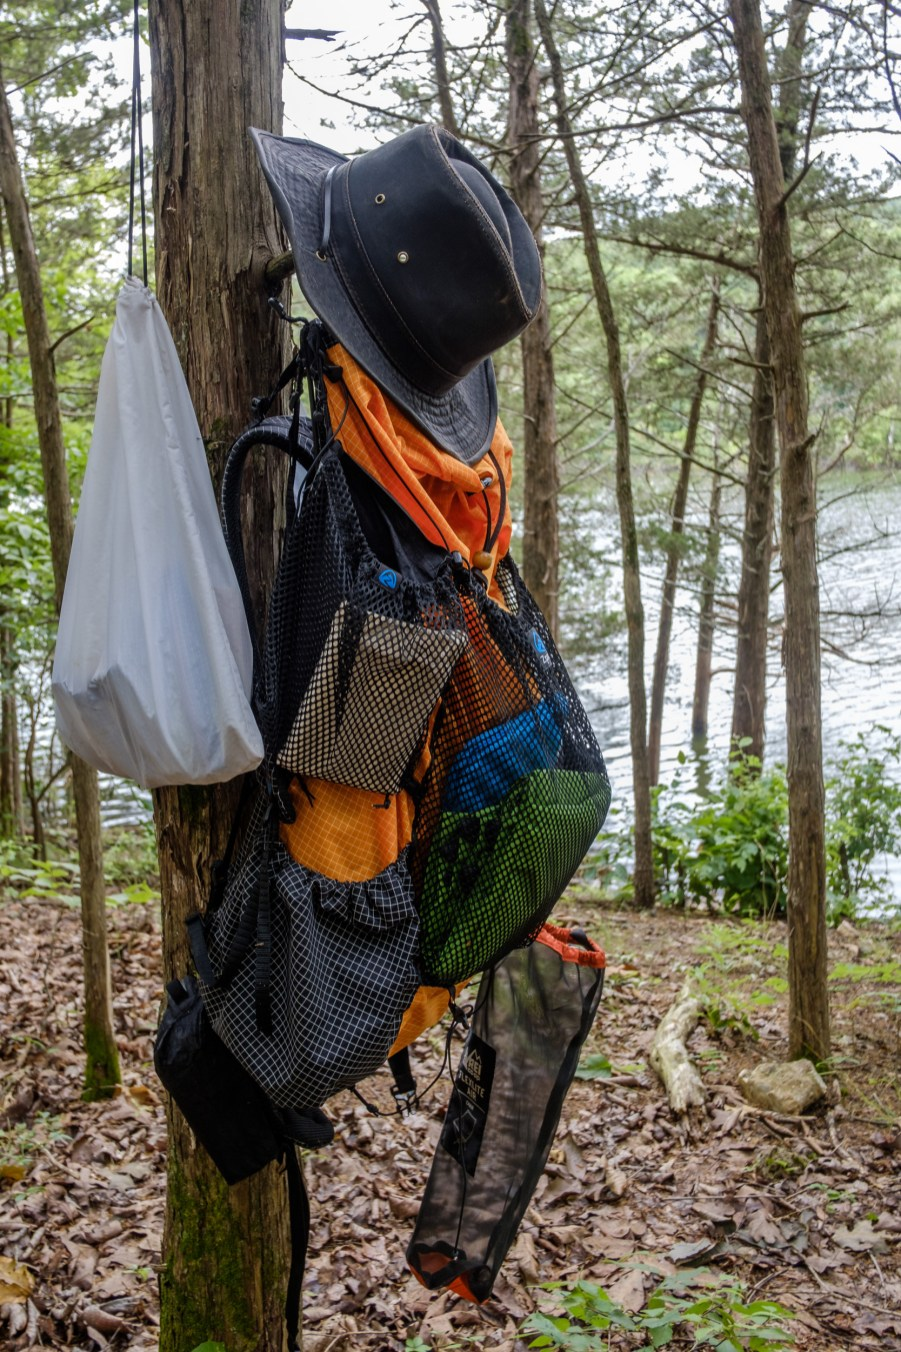 Gear-rack Tree - It's what every good campsite needs. Piney Creek Wilderness - Day Two. Copyright © 2020 Gary Allman, all rights reserved.